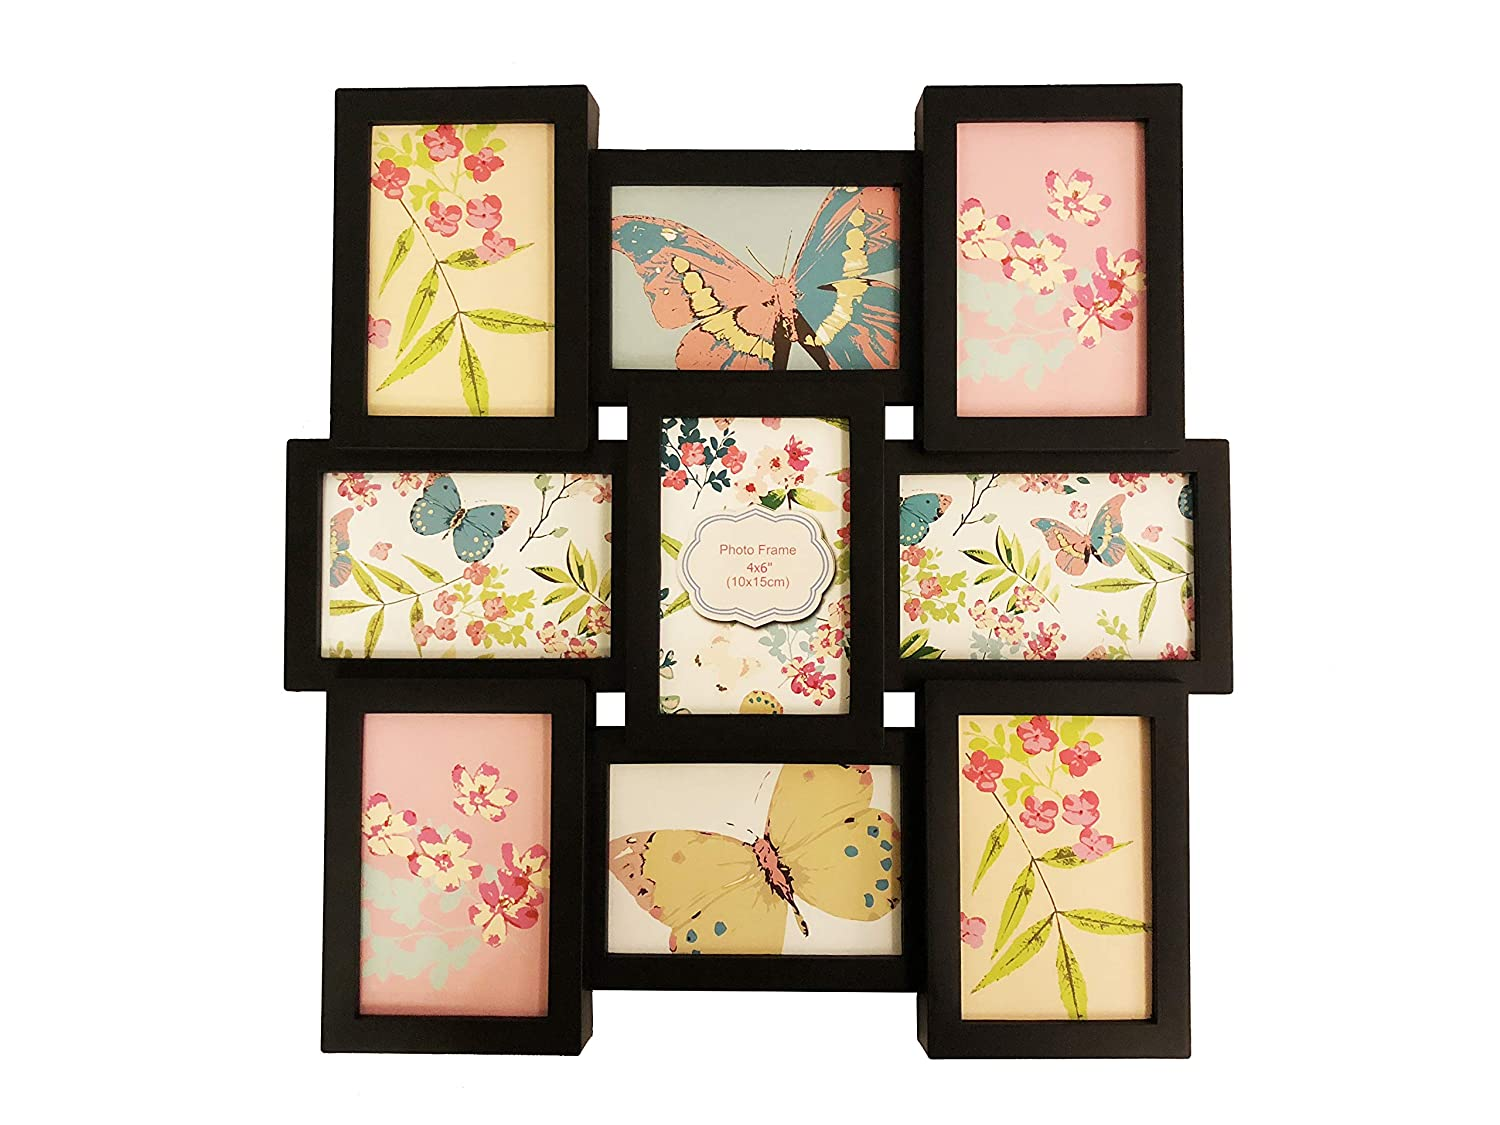 BestBuy Frames Wall Hanging Large 9-Piece Multiple Openings Black Collage Picture Frames for 4-Inch-by-6-Inch Photos